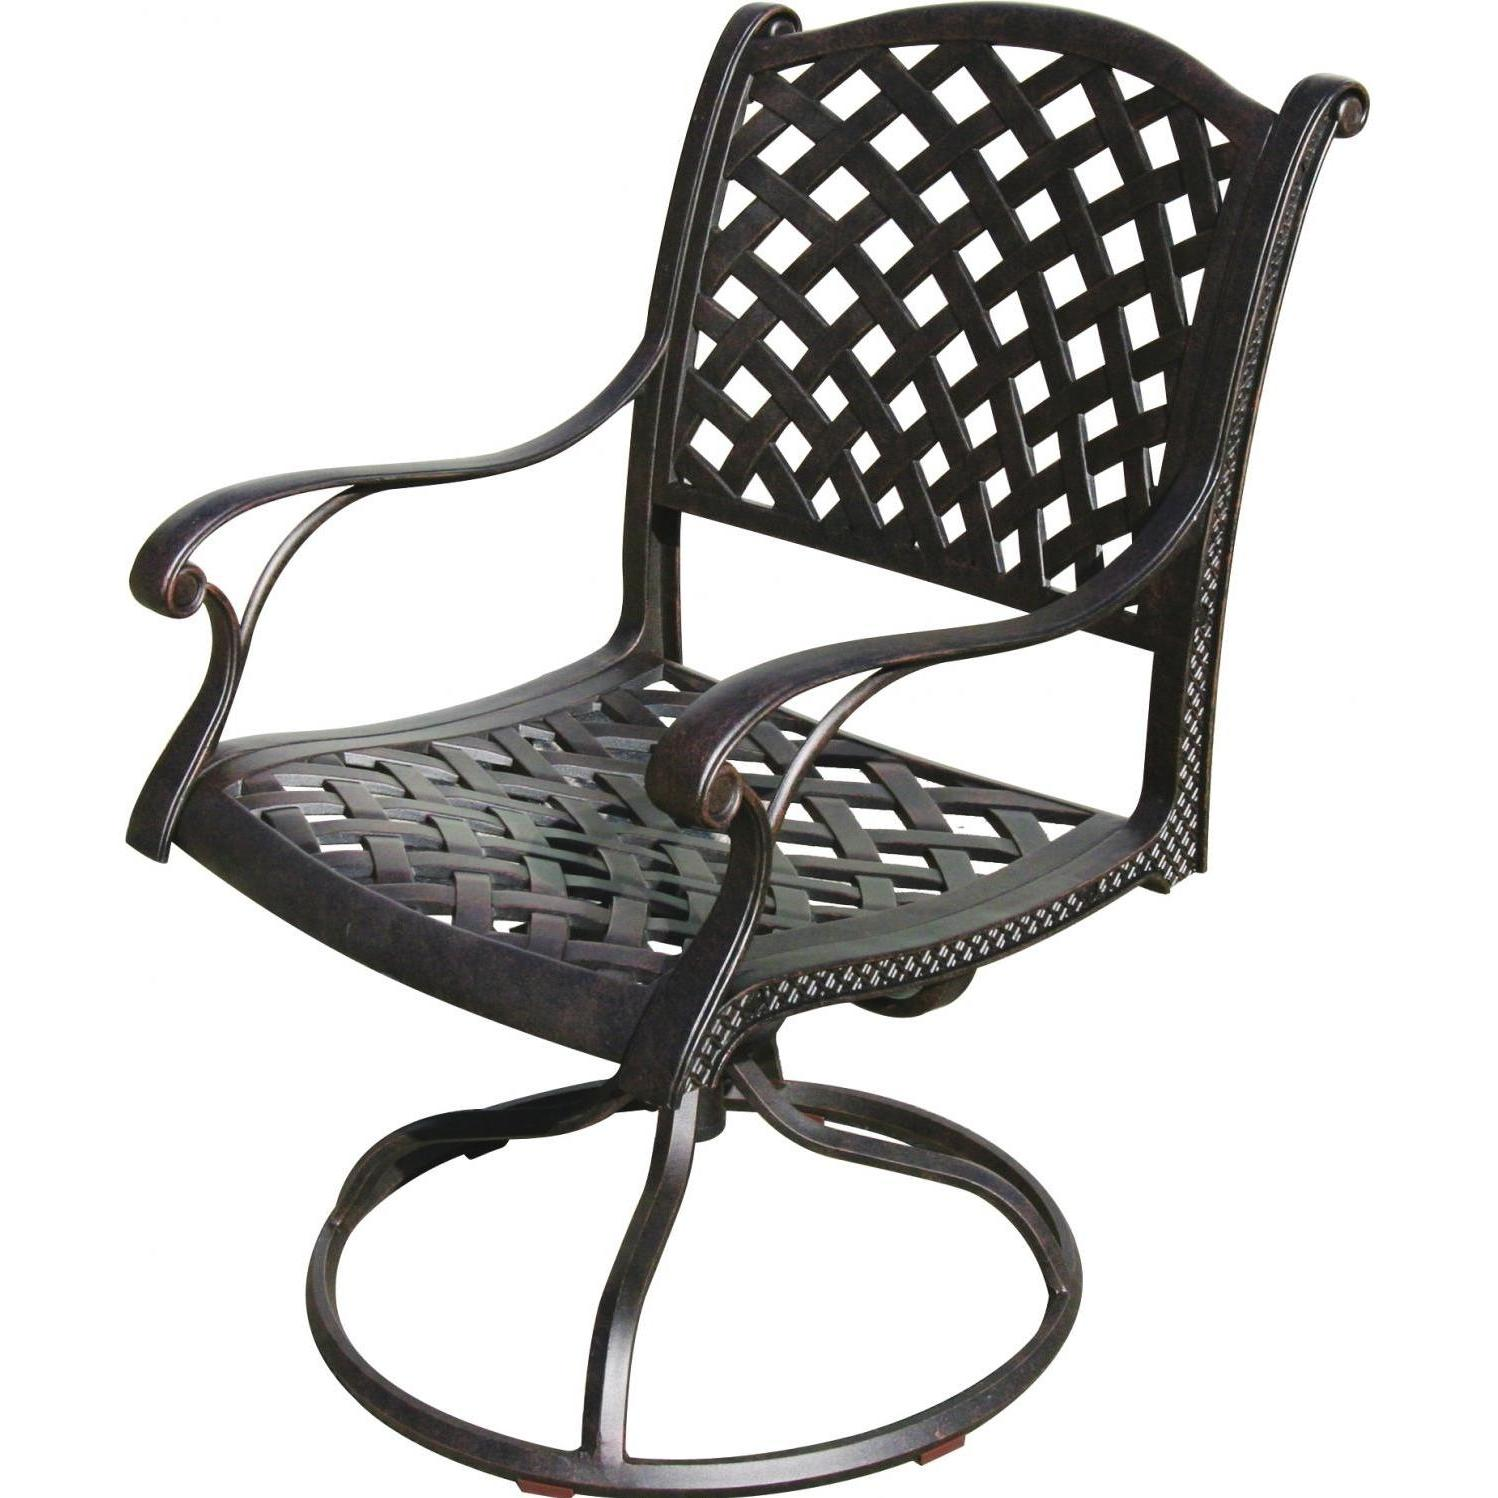 Darlee Outdoor Furniture - Nevada Outdoor Living